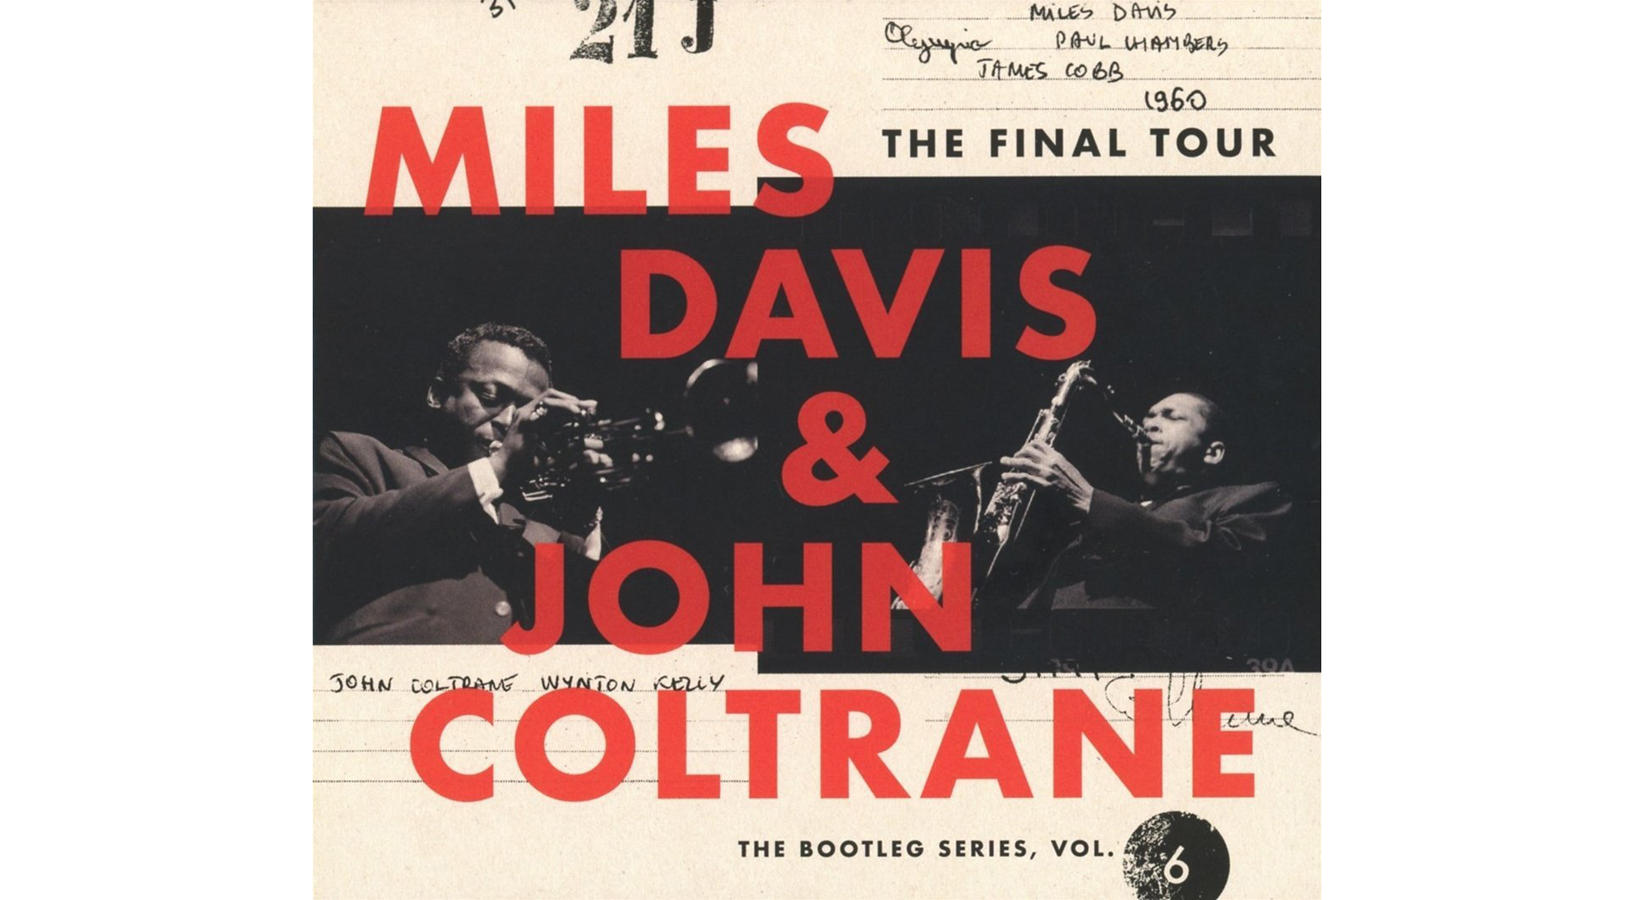 Miles Davis & John Coltrane: The Final Tour, the Bootleg Series Volume 6